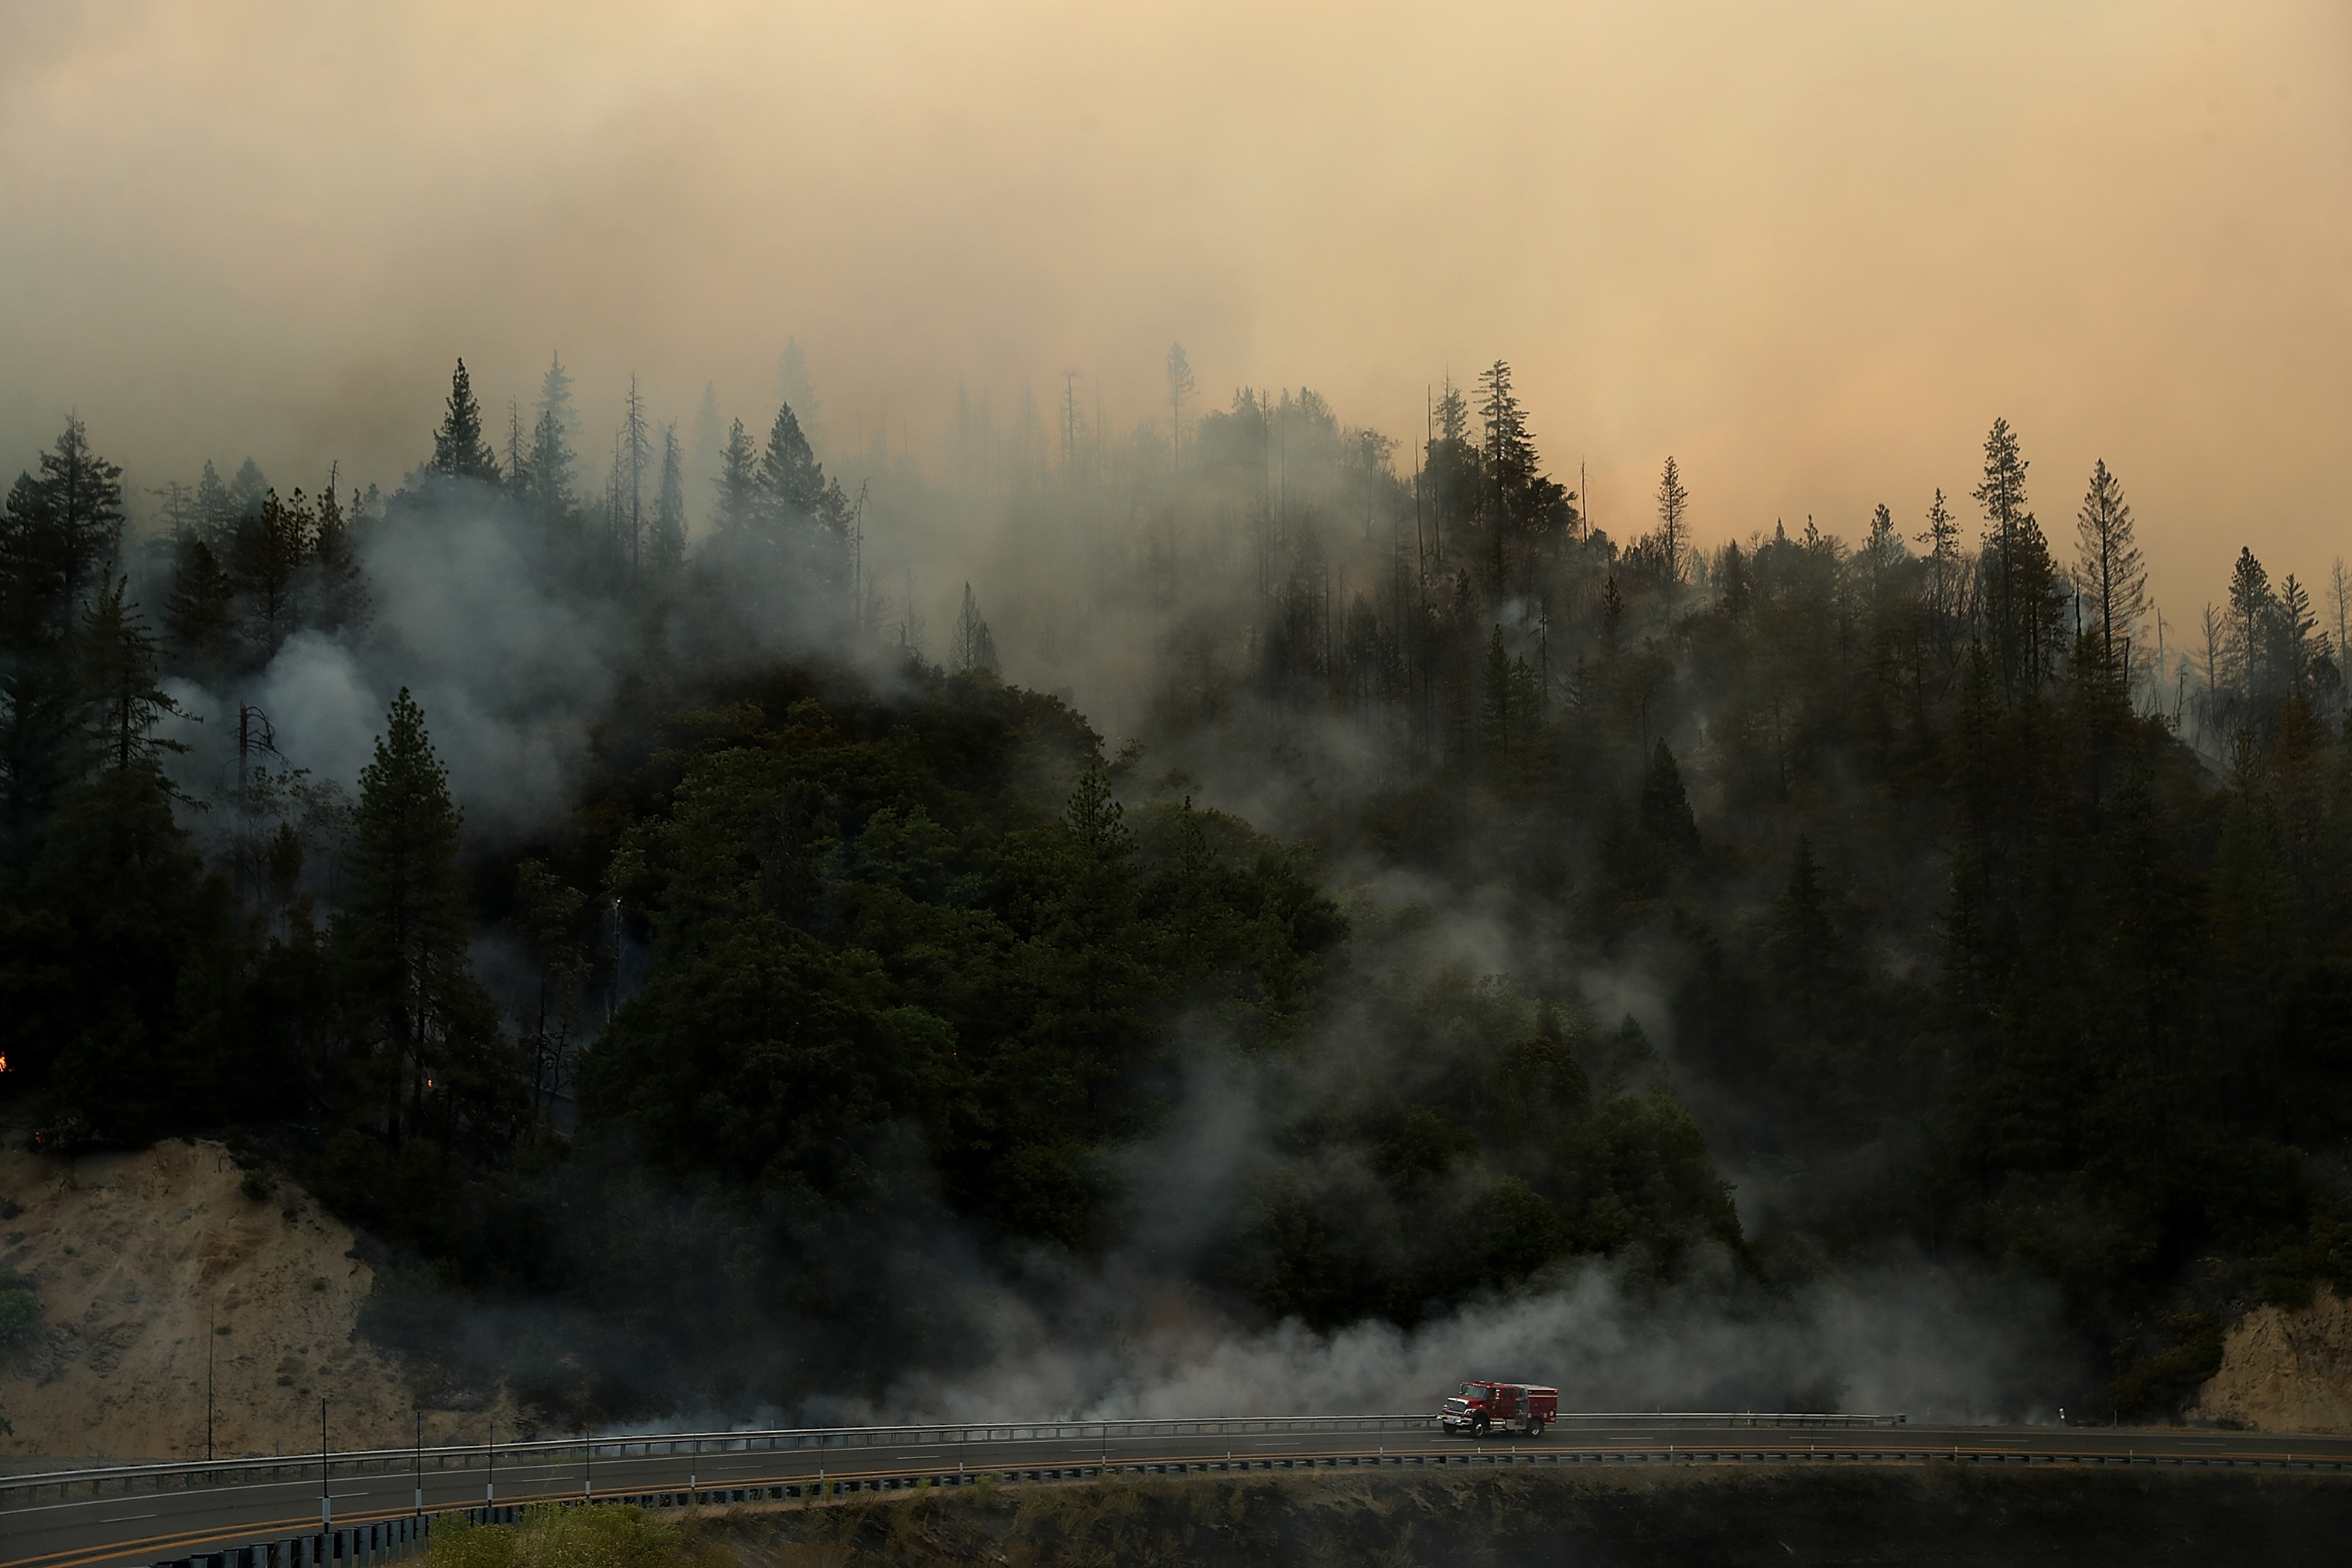 A Cal Fire truck drives along highway 299 as the Carr Fire burns in the hills near Whiskeytown, Calif. on July 28.